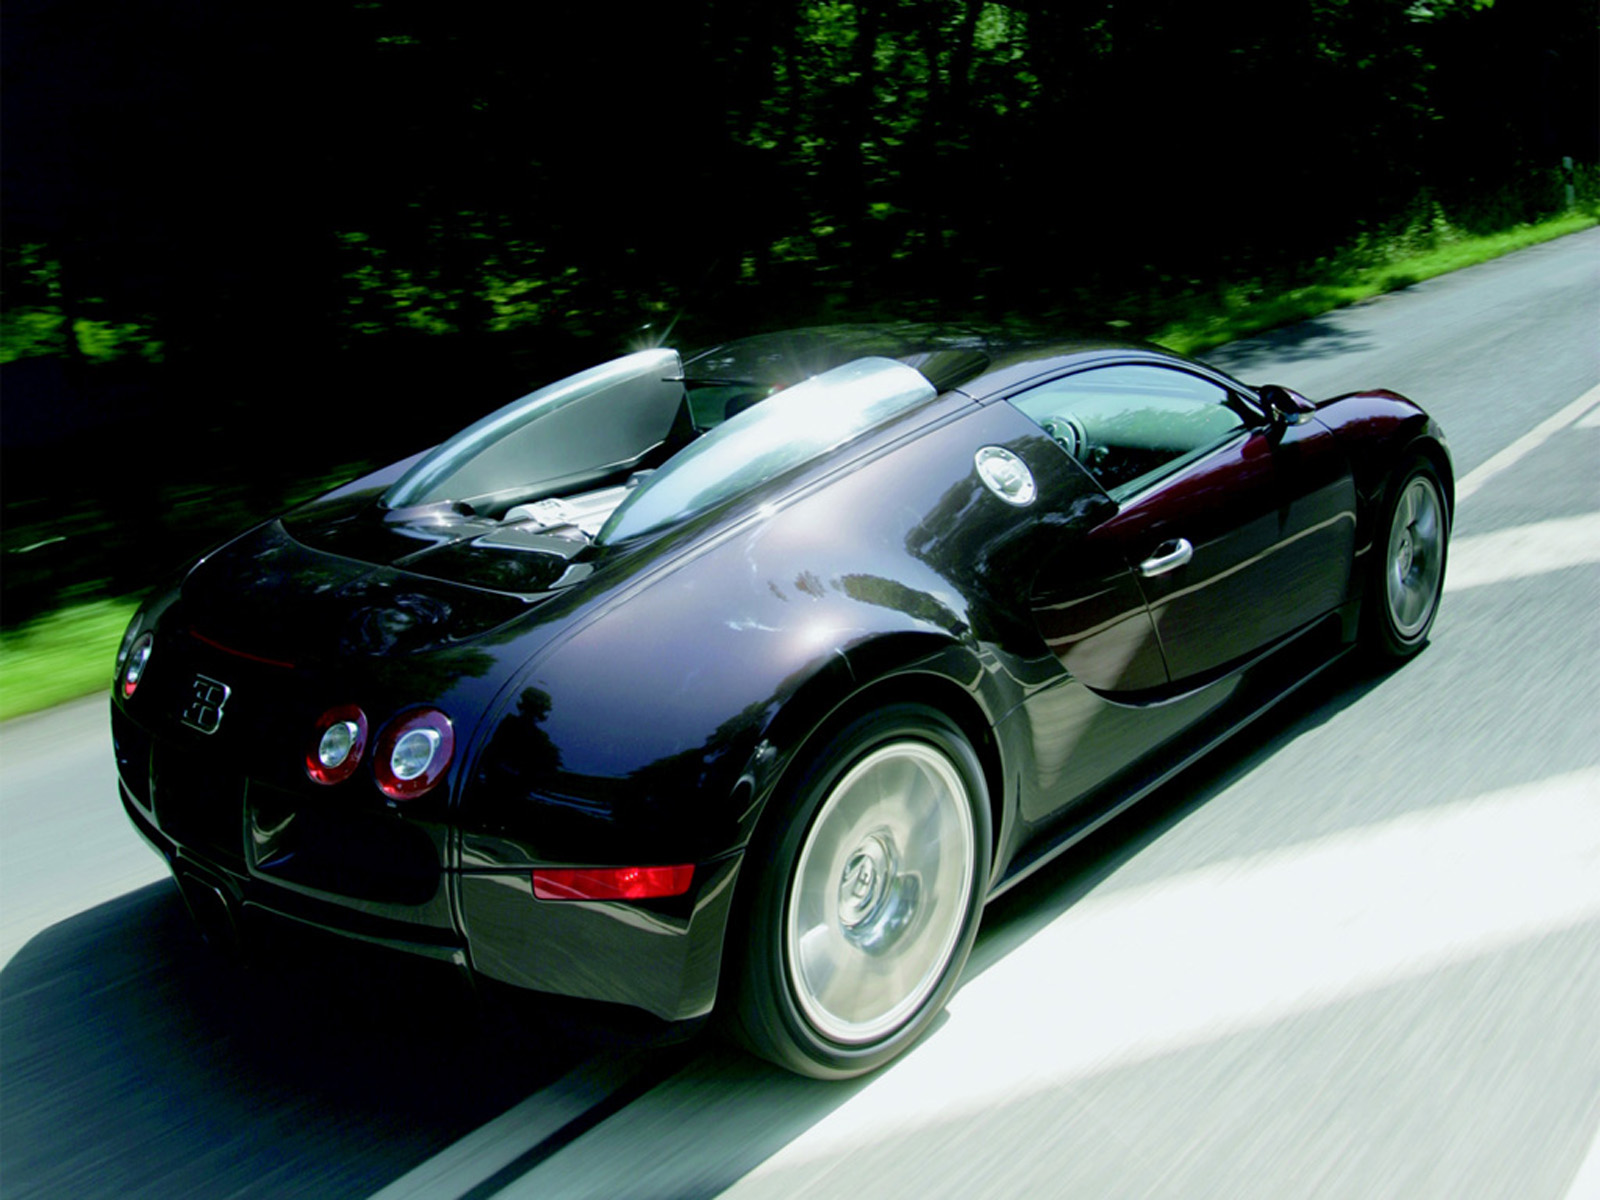 Hd-Car wallpapers: bugatti veyron